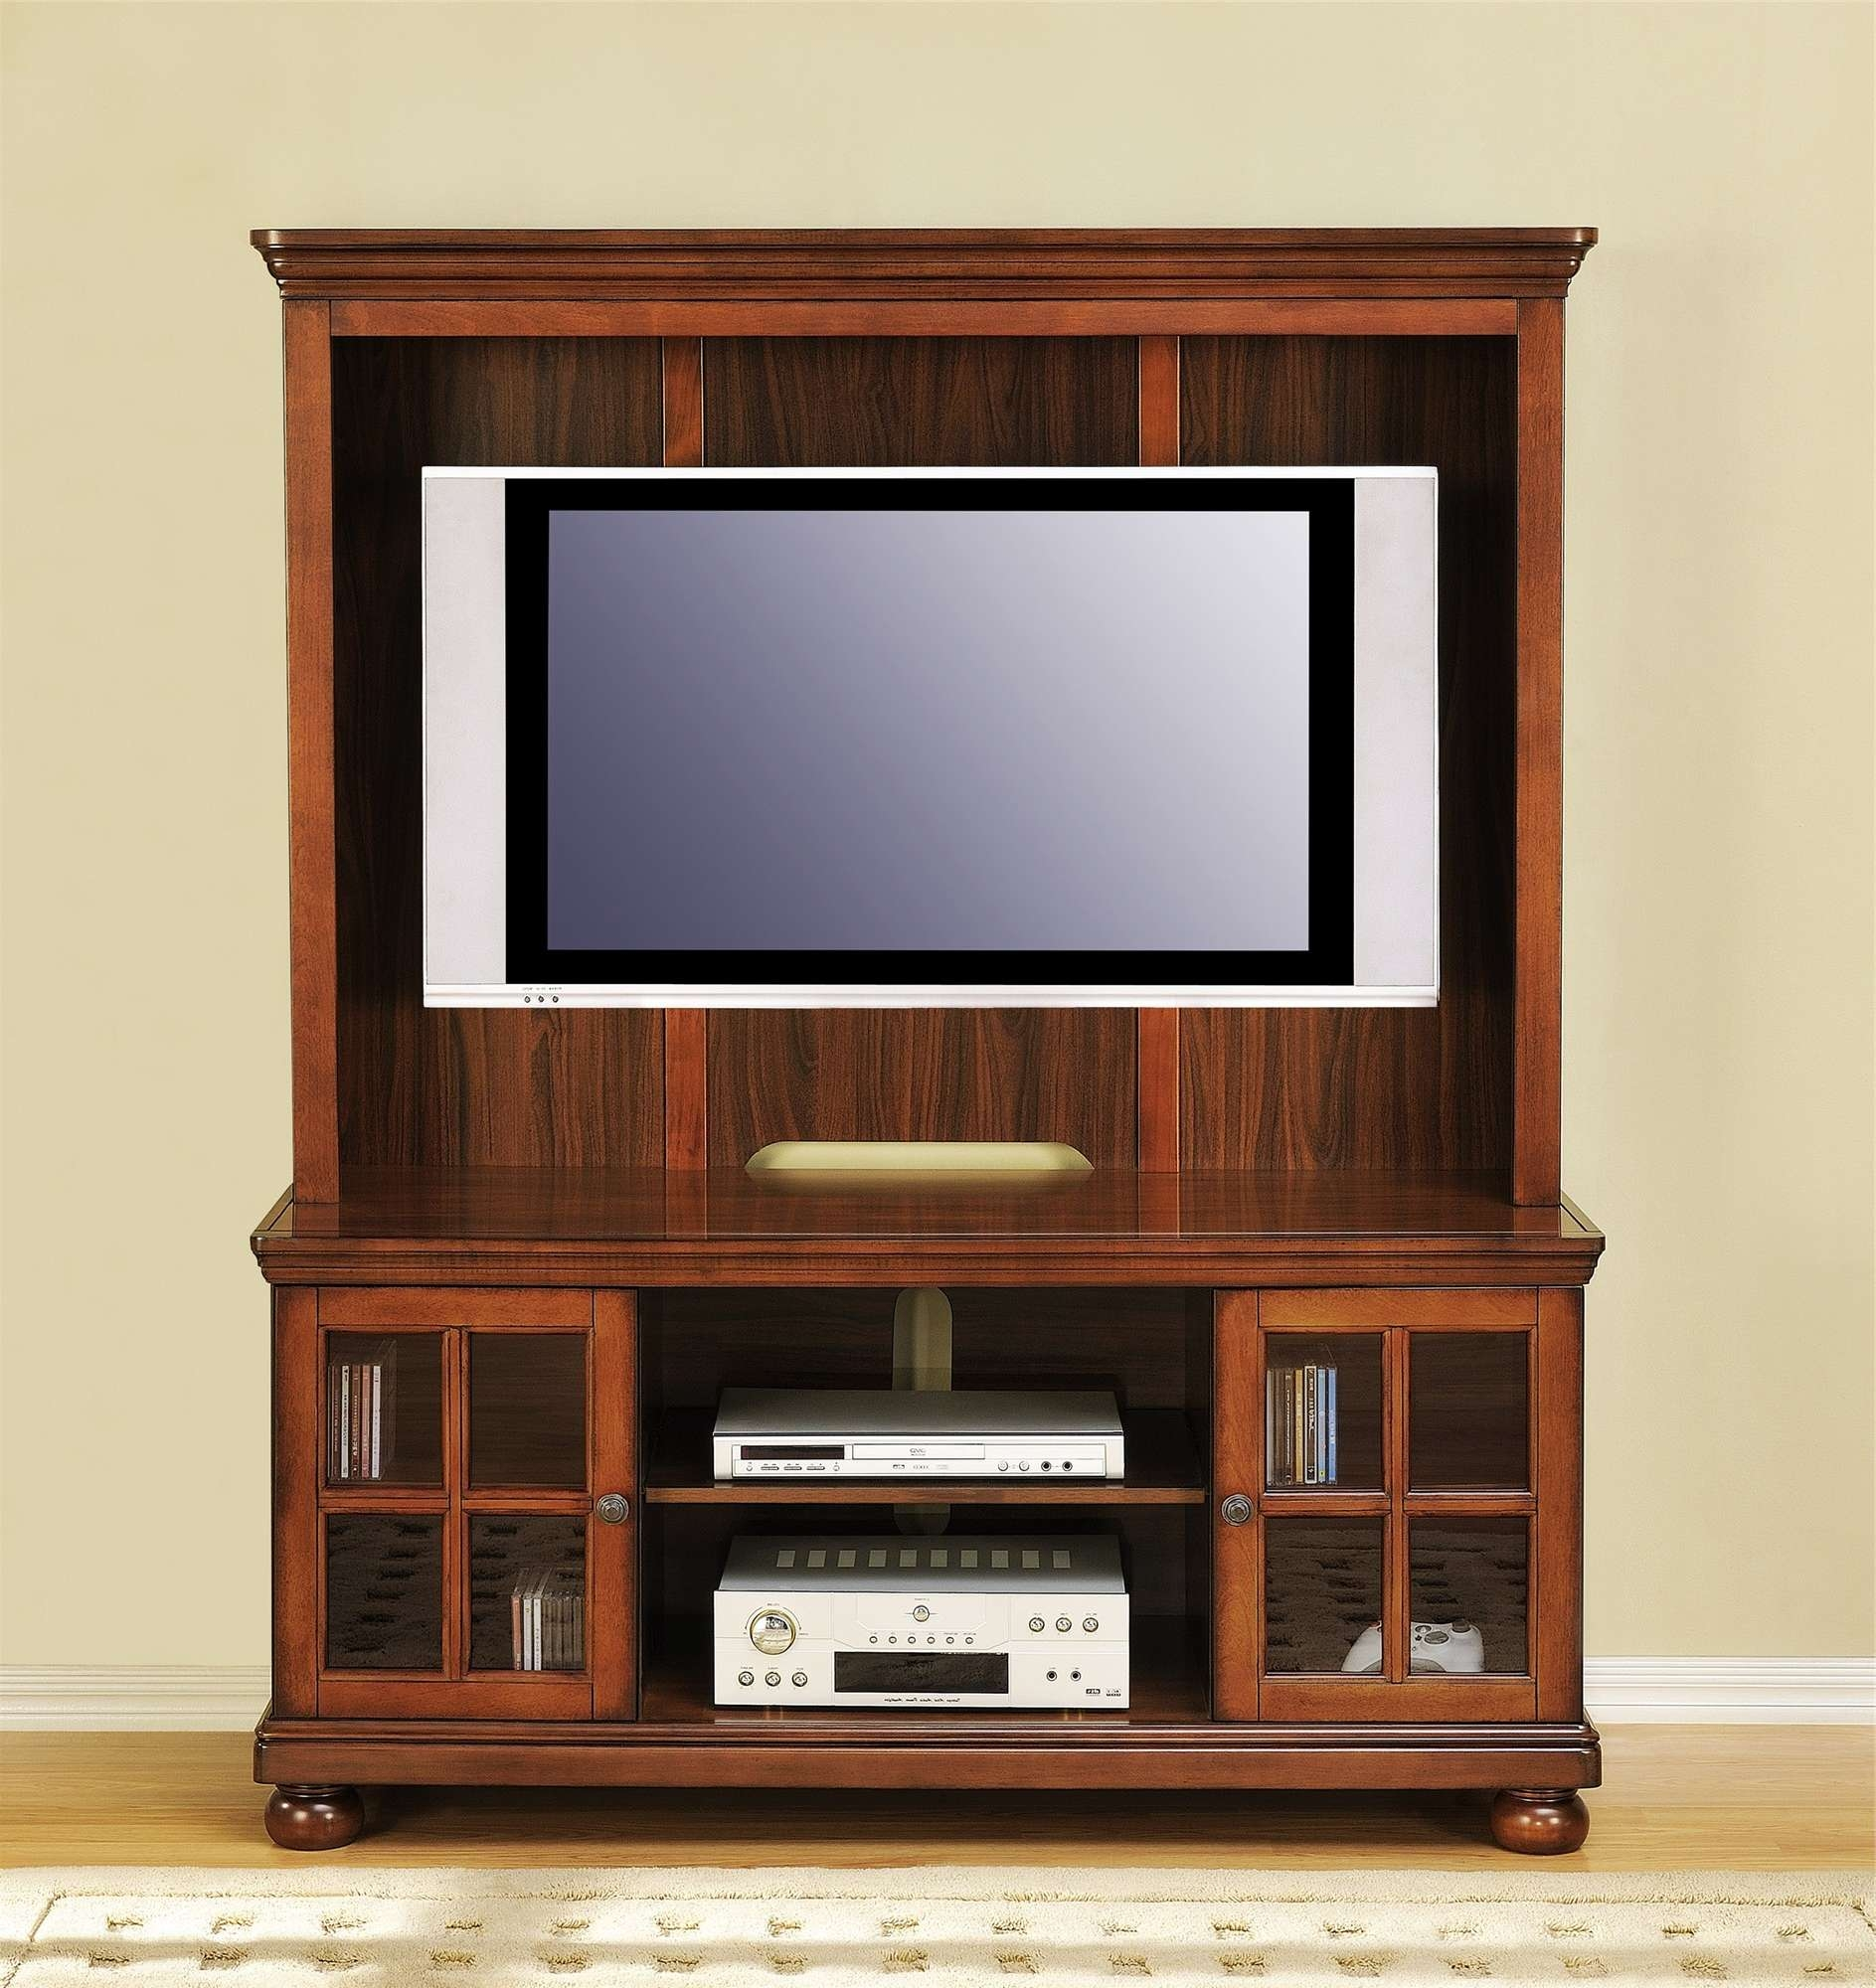 Brown Wooden Tv Cabinet With Glass Frosted Doors On The Floor Within Wooden Tv Cabinets With Glass Doors (View 9 of 20)